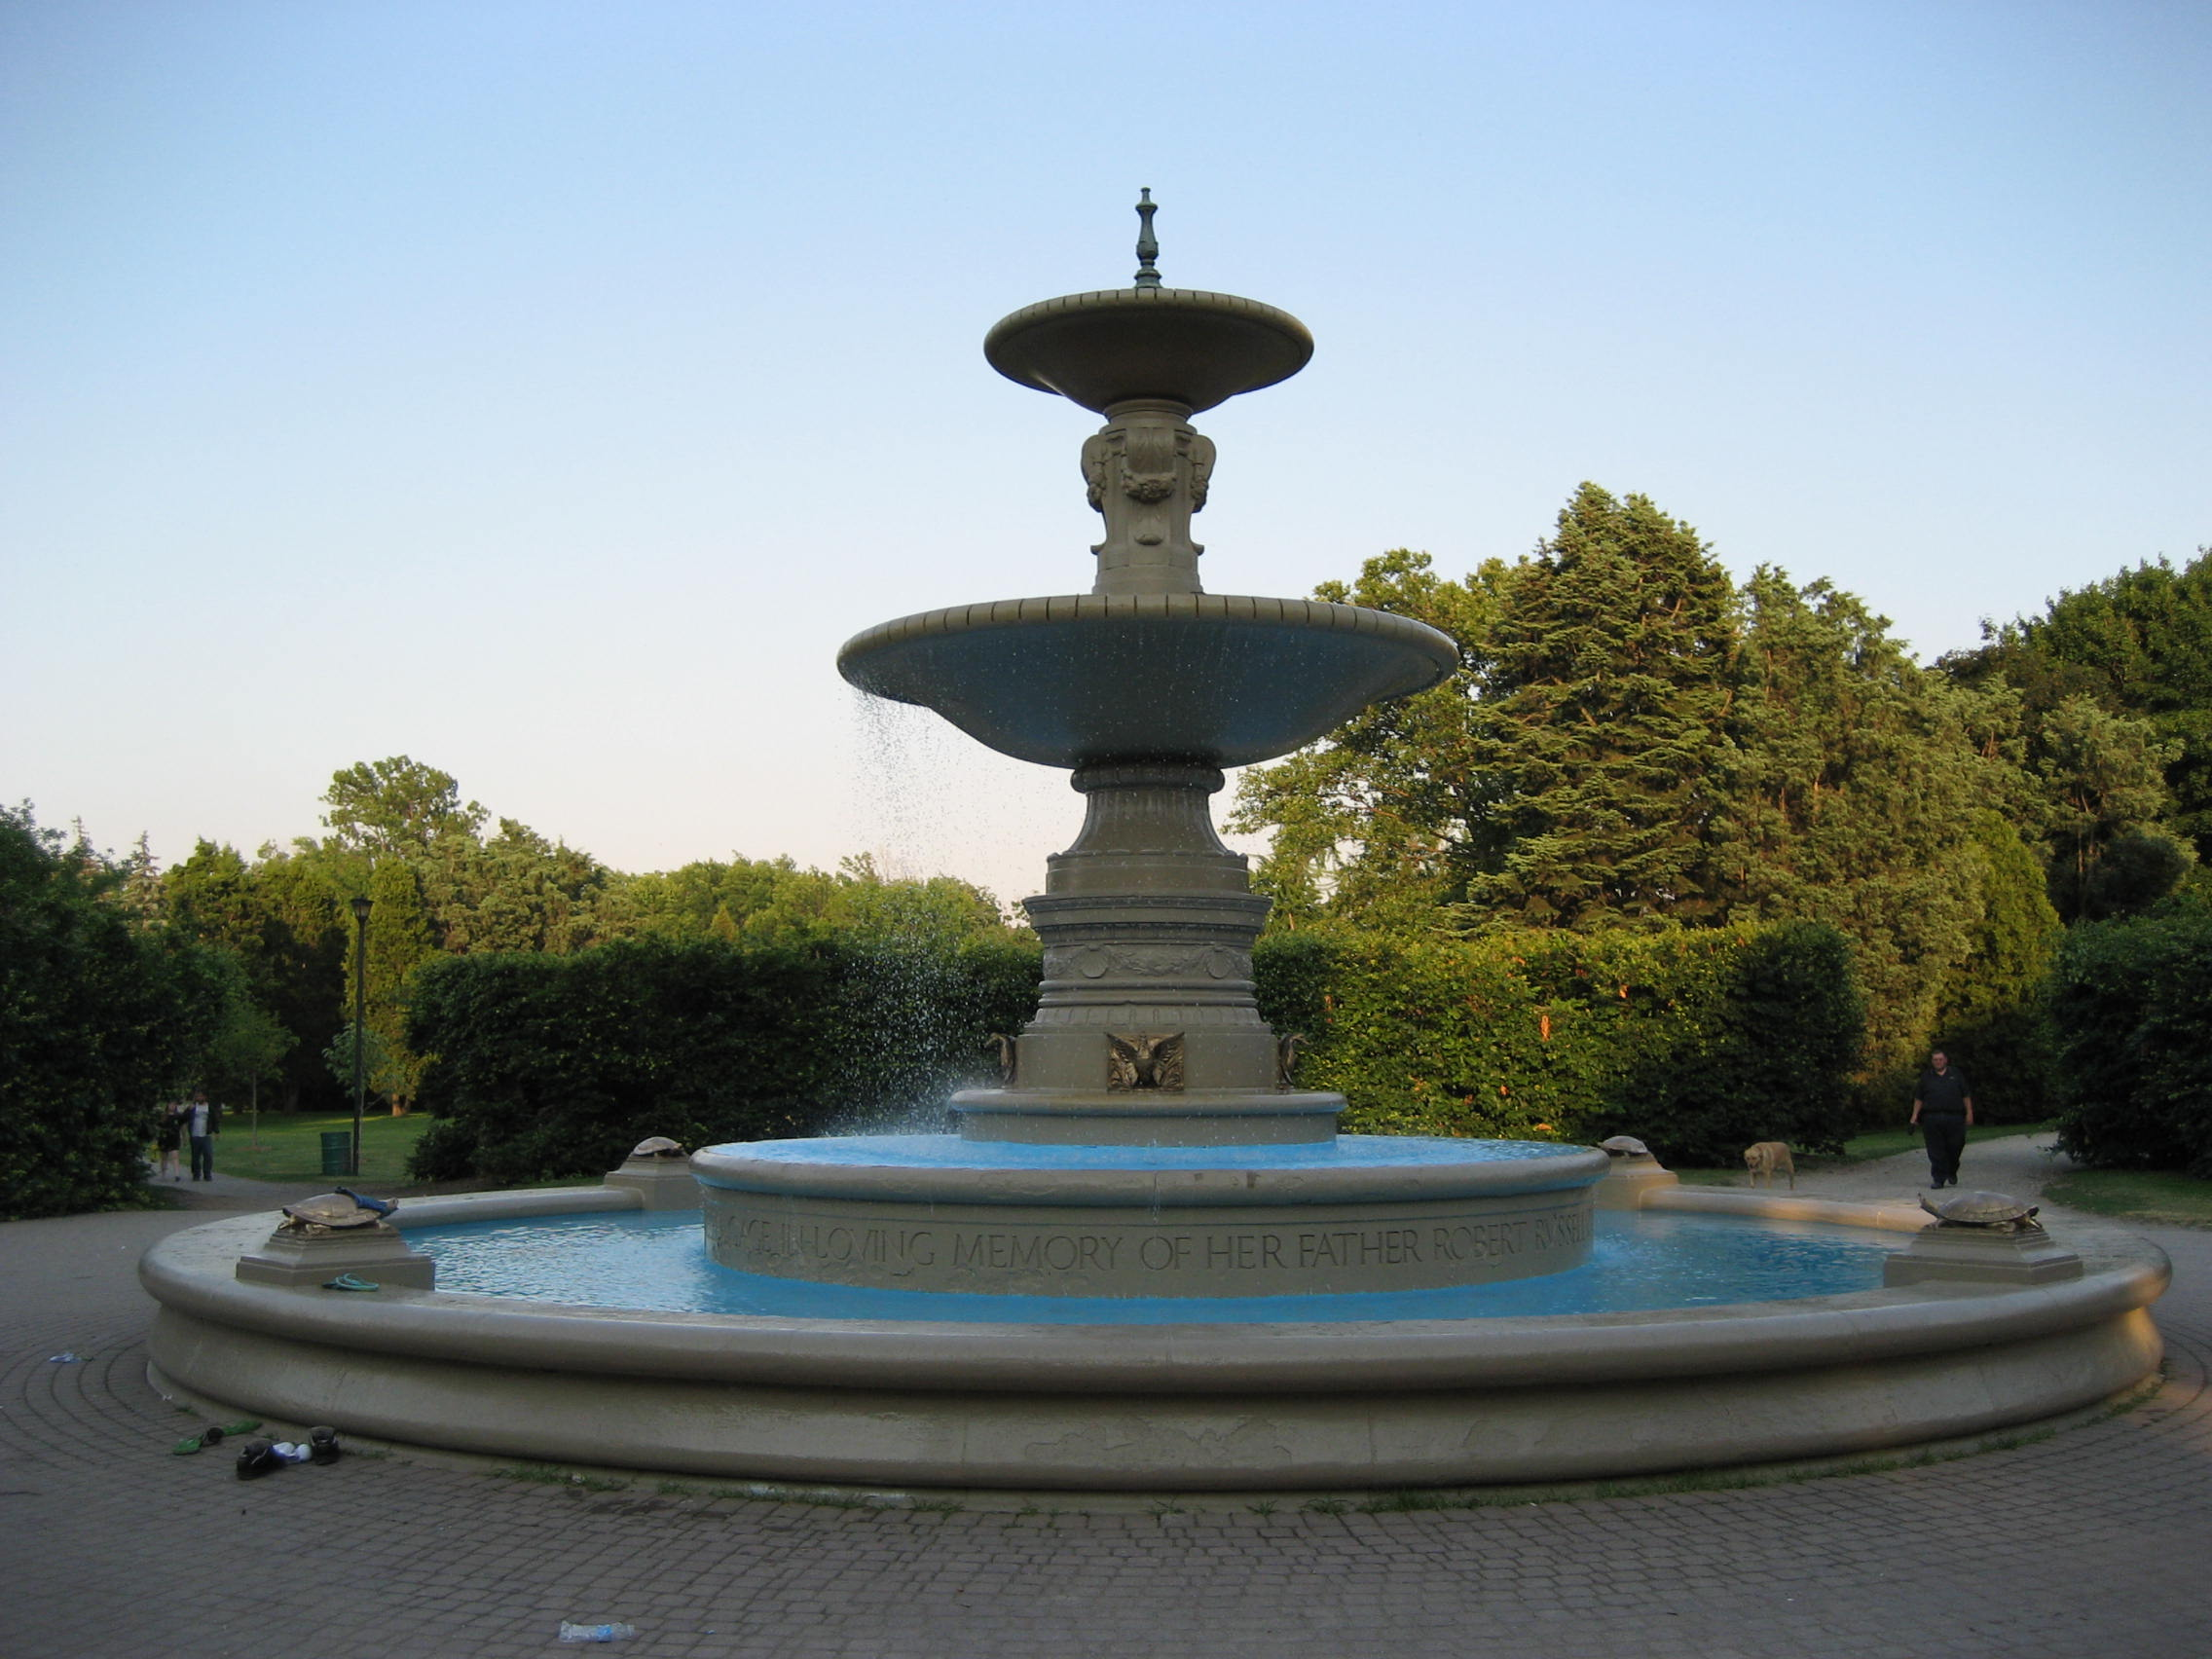 gage park,Things to do in Hamilton, Canada